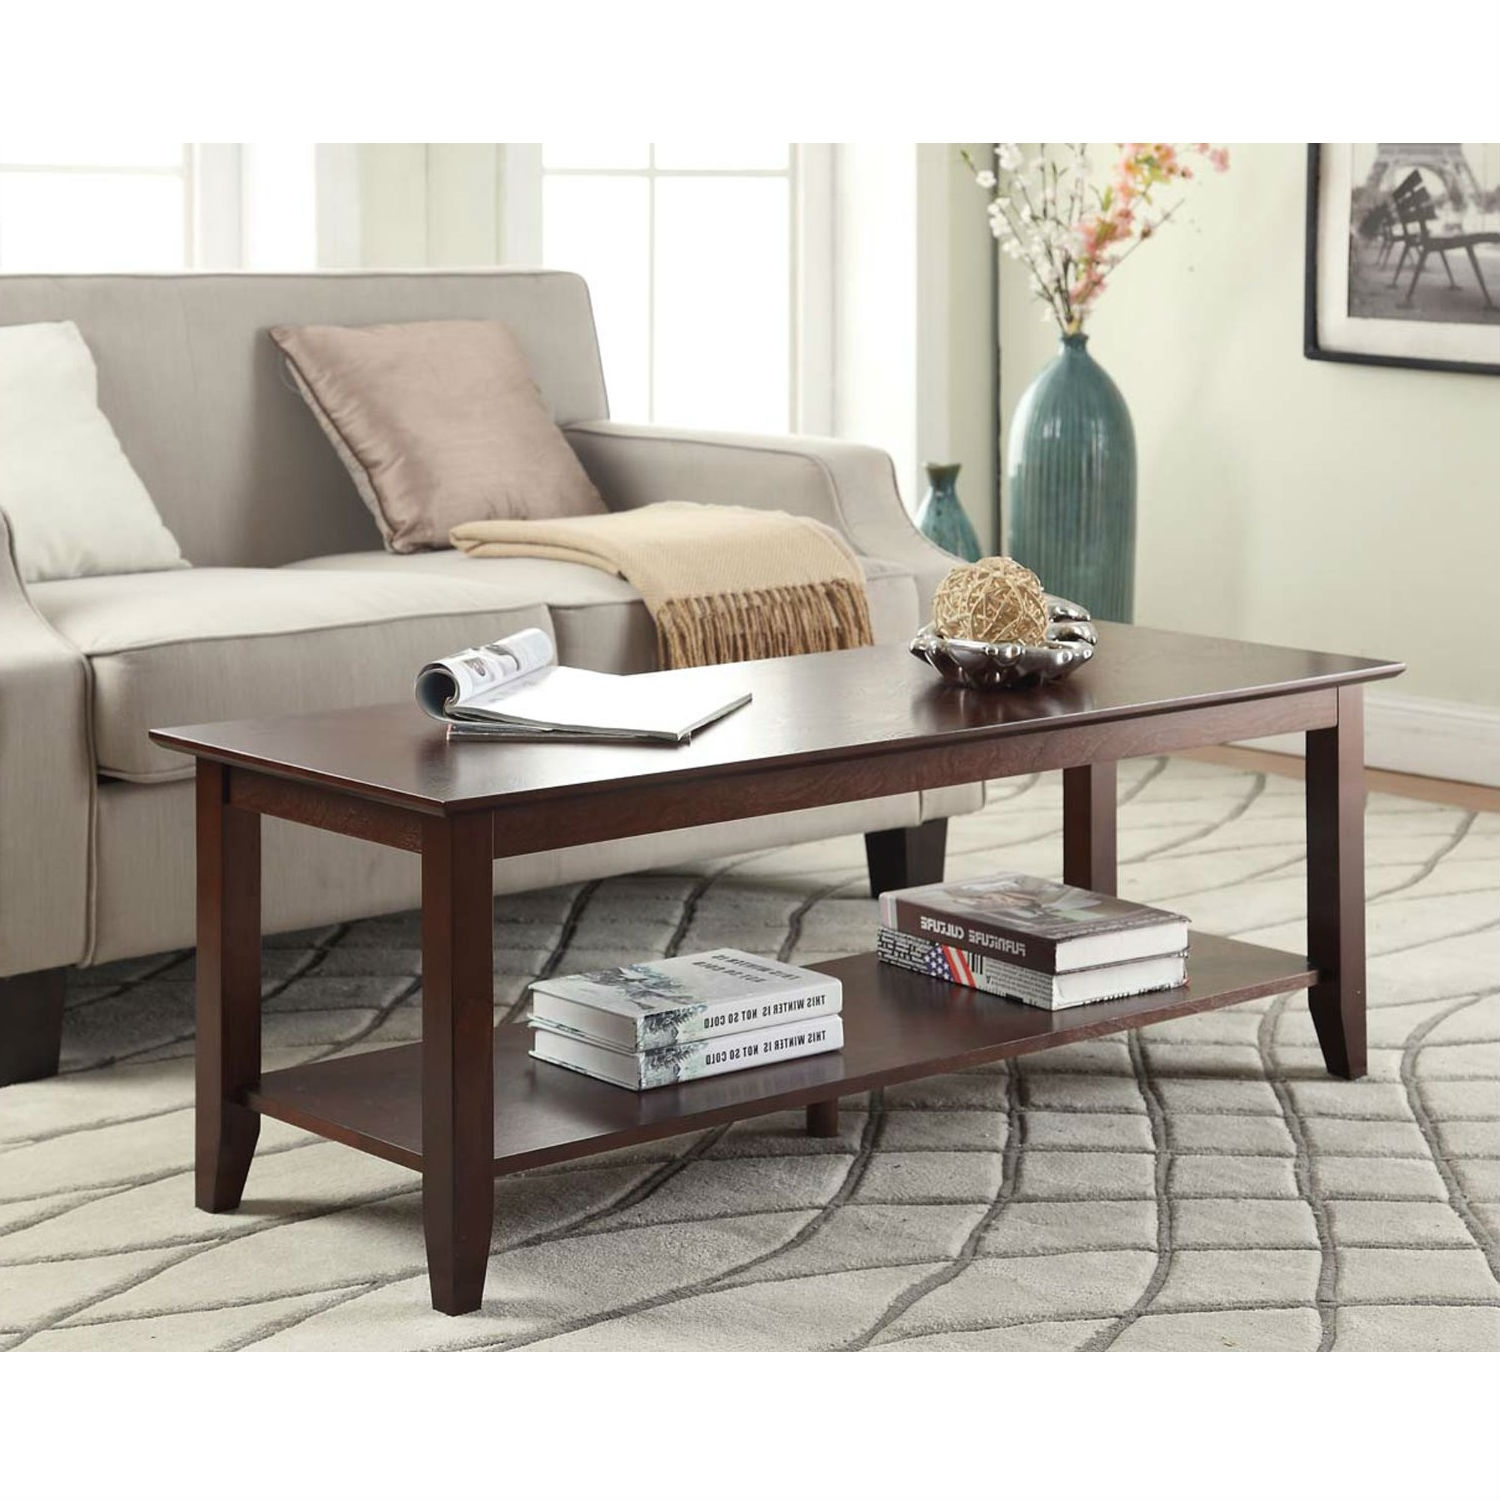 Eco friendly espresso wood coffee table with bottom shelf Eco friendly coffee table